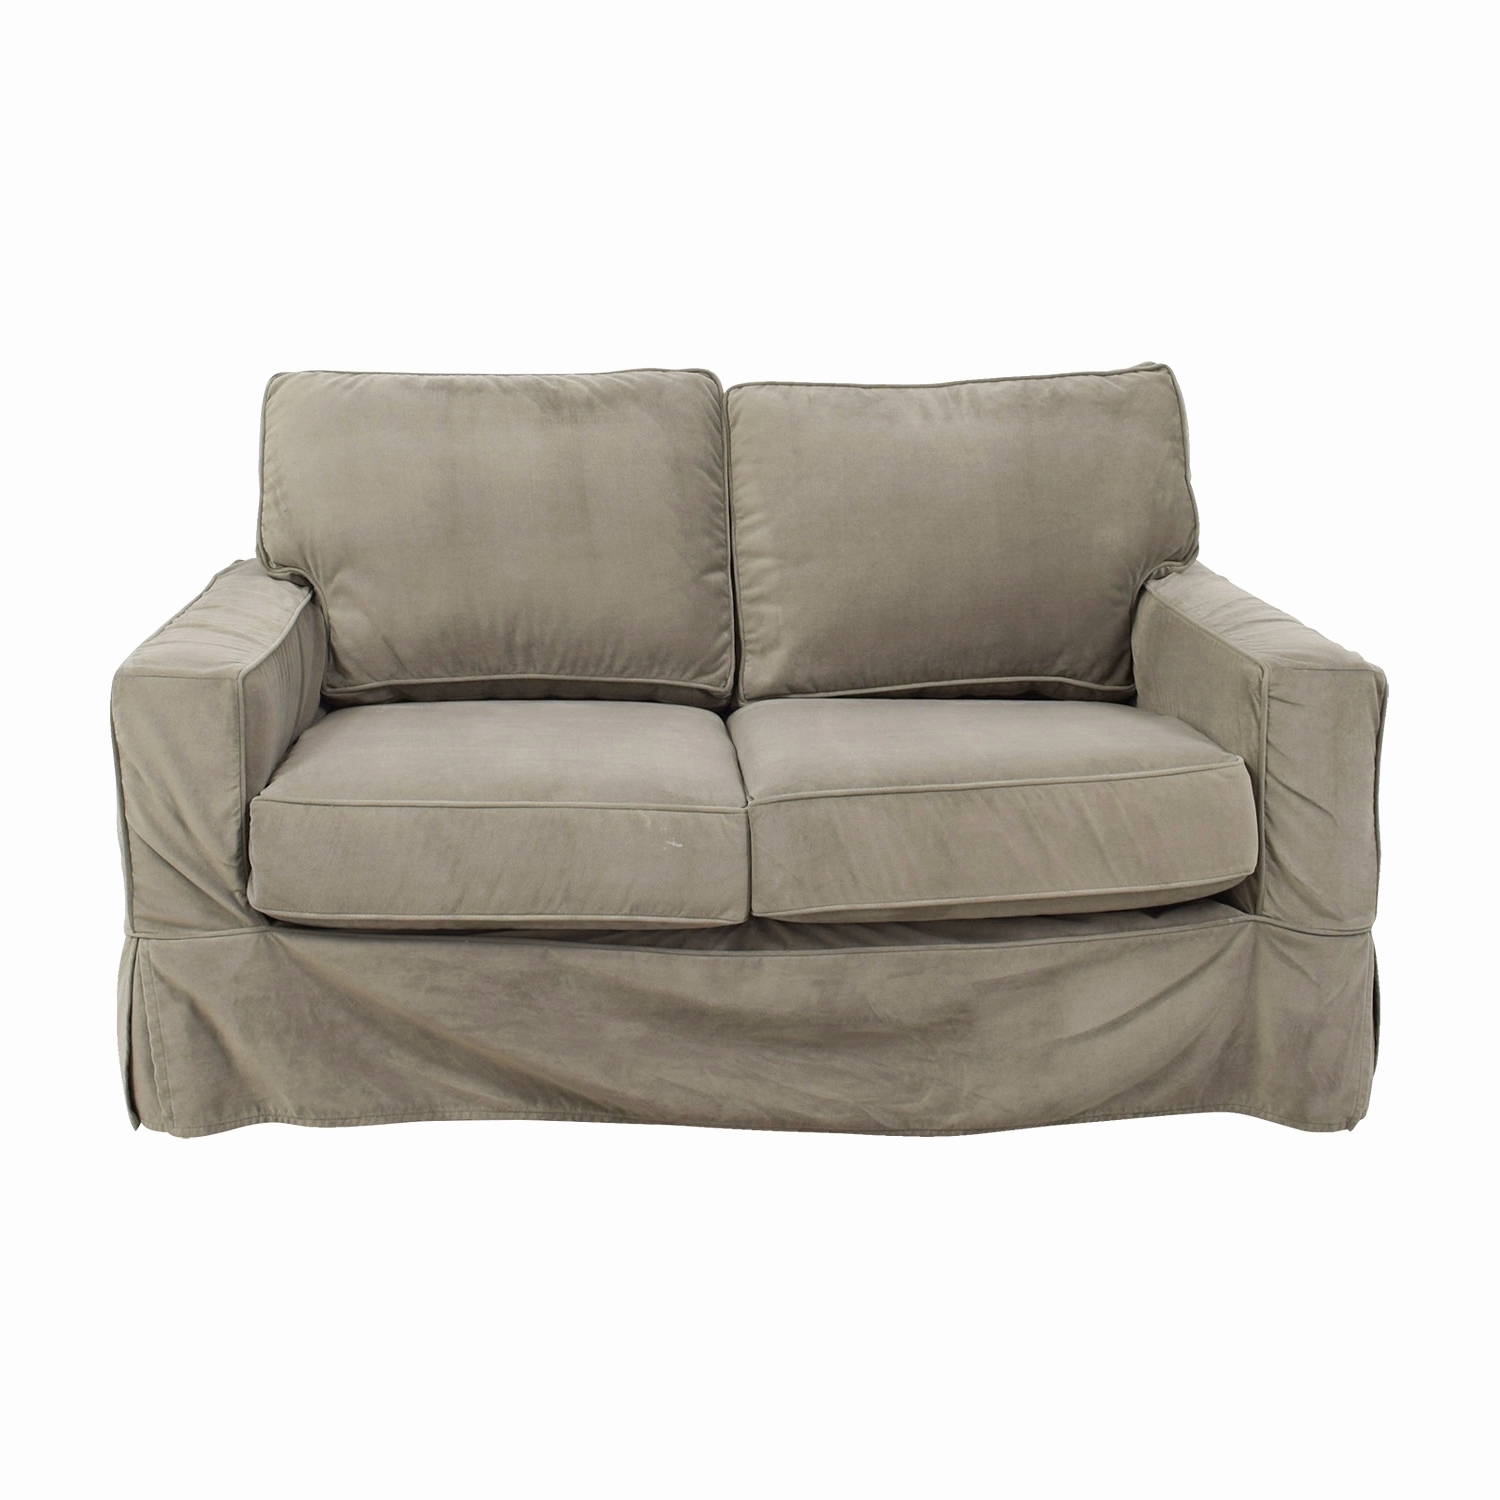 Sofa : Find Small Sectional Sofas For Small Spaces Lovely 100 Sofa Inside Widely Used Small Sectional Sofas (View 15 of 20)